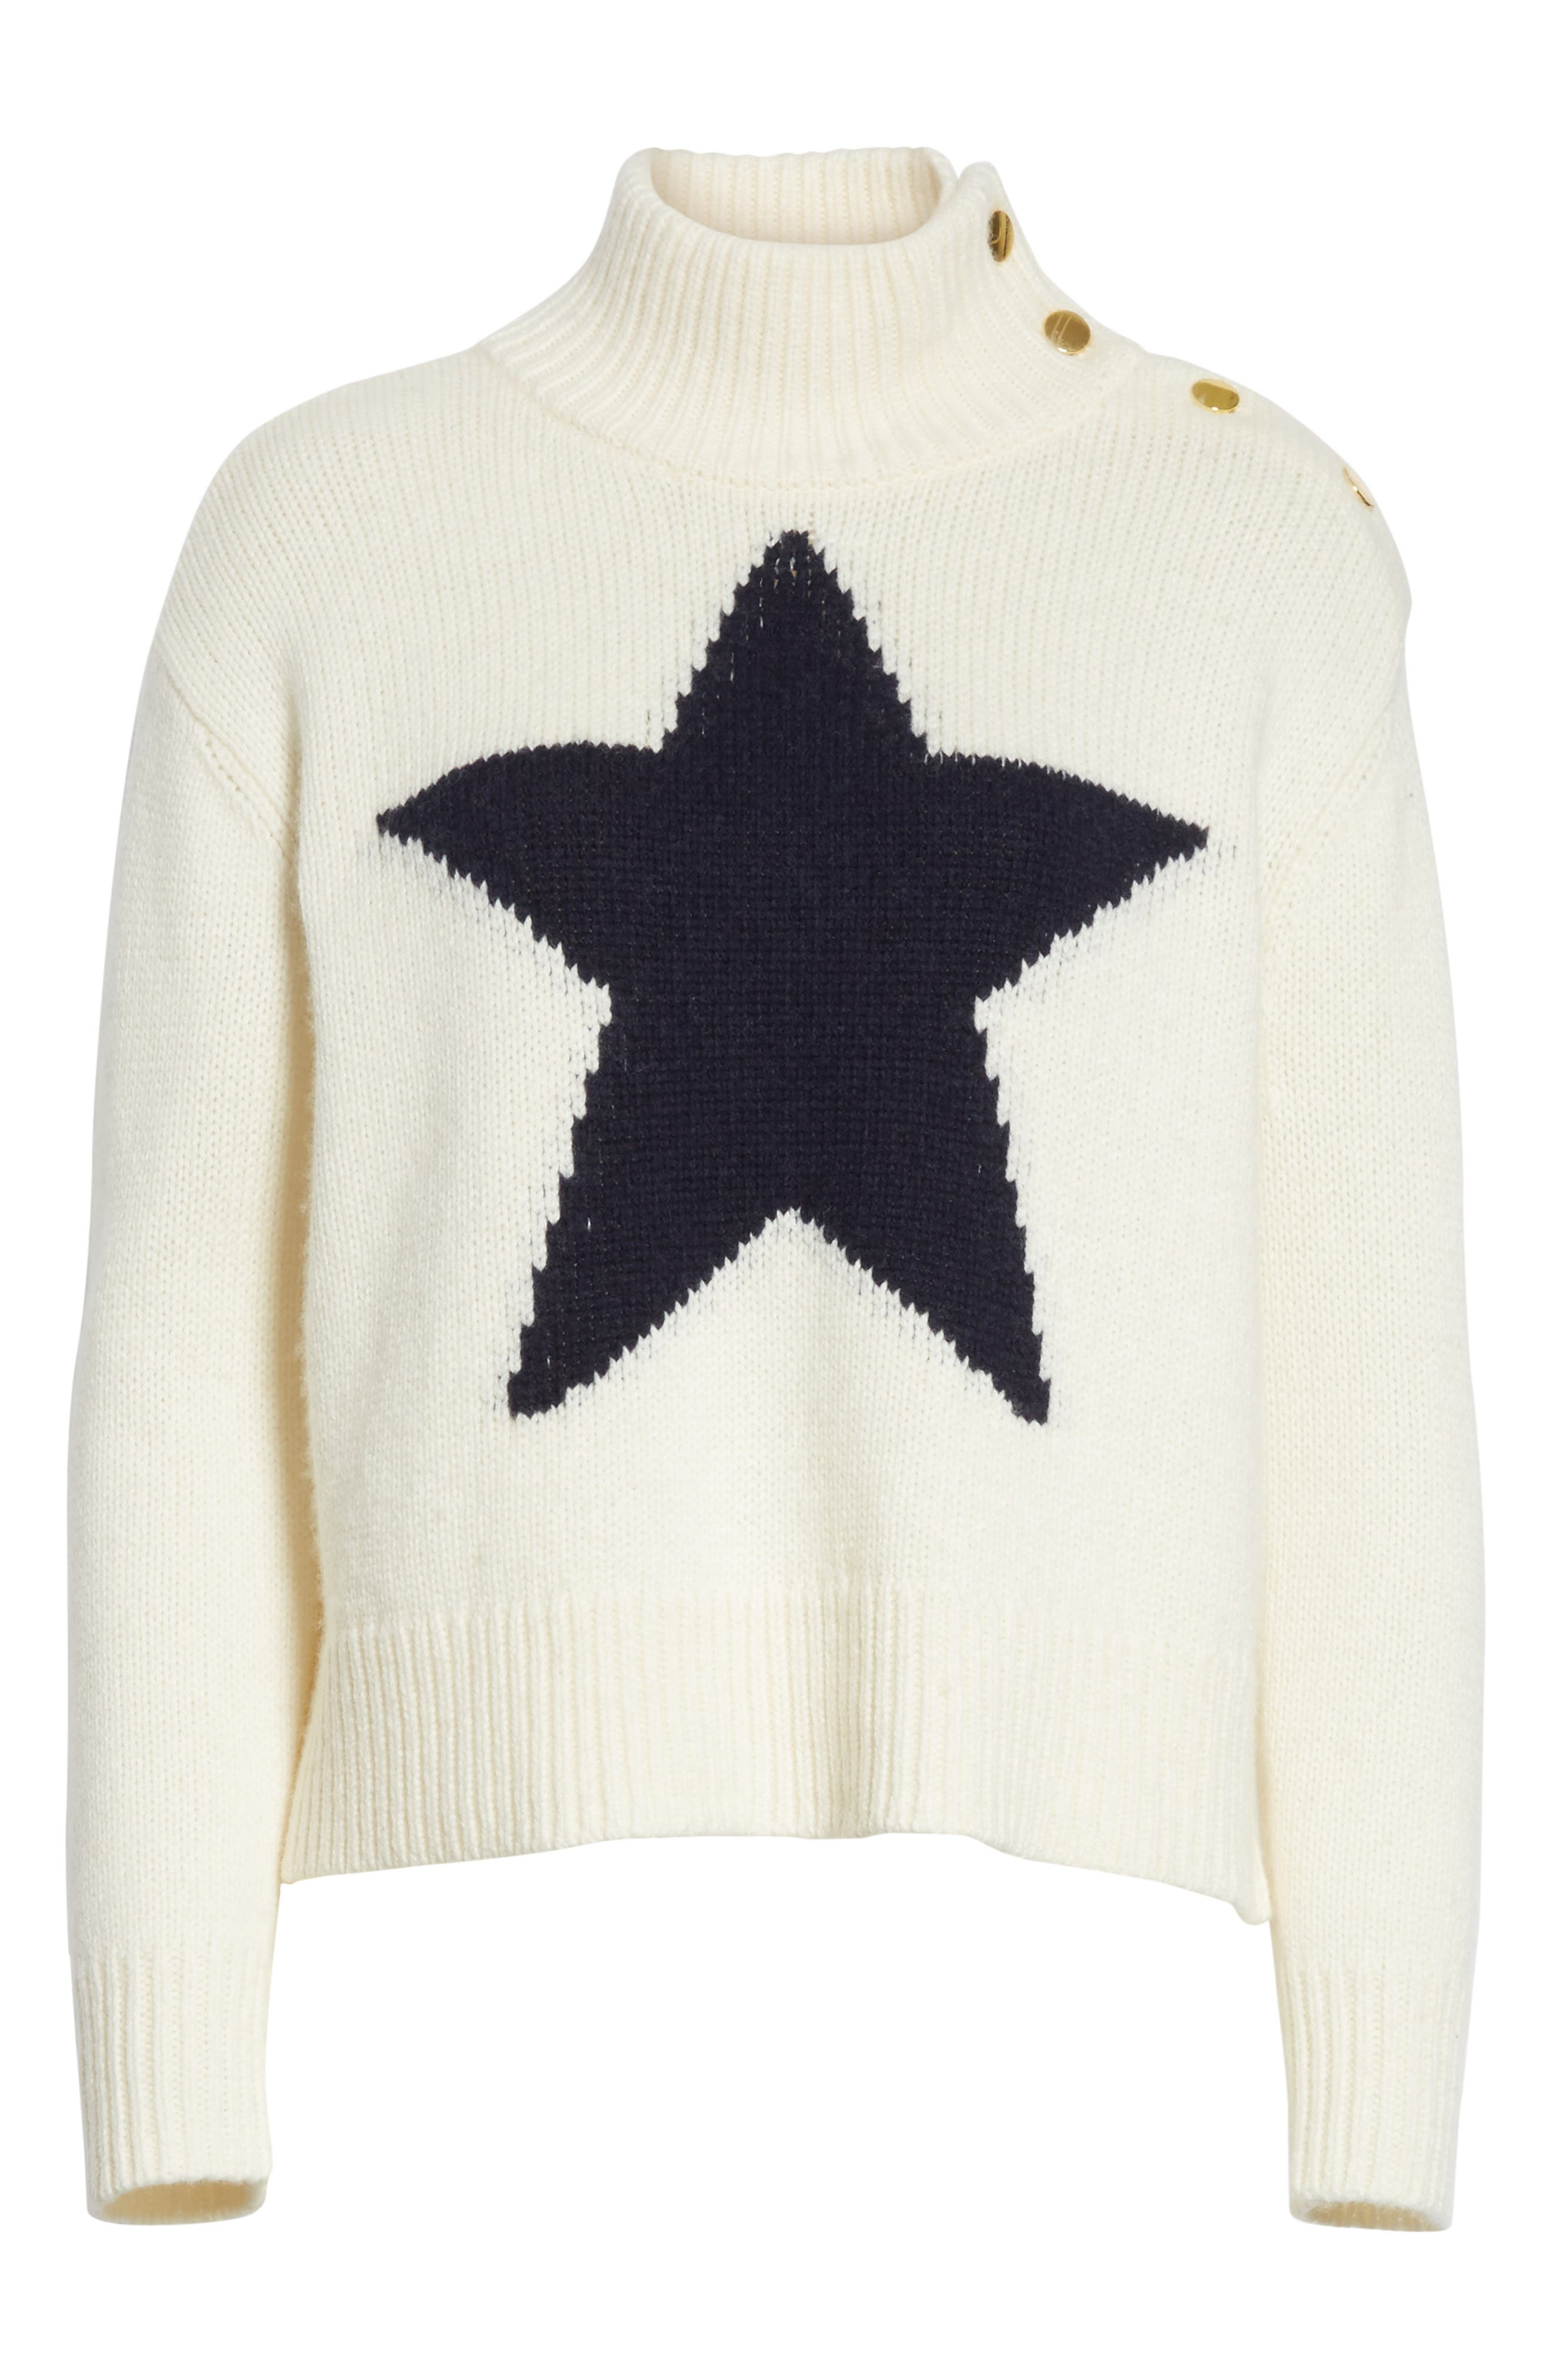 star turtleneck sweater,                             Alternate thumbnail 6, color,                             251